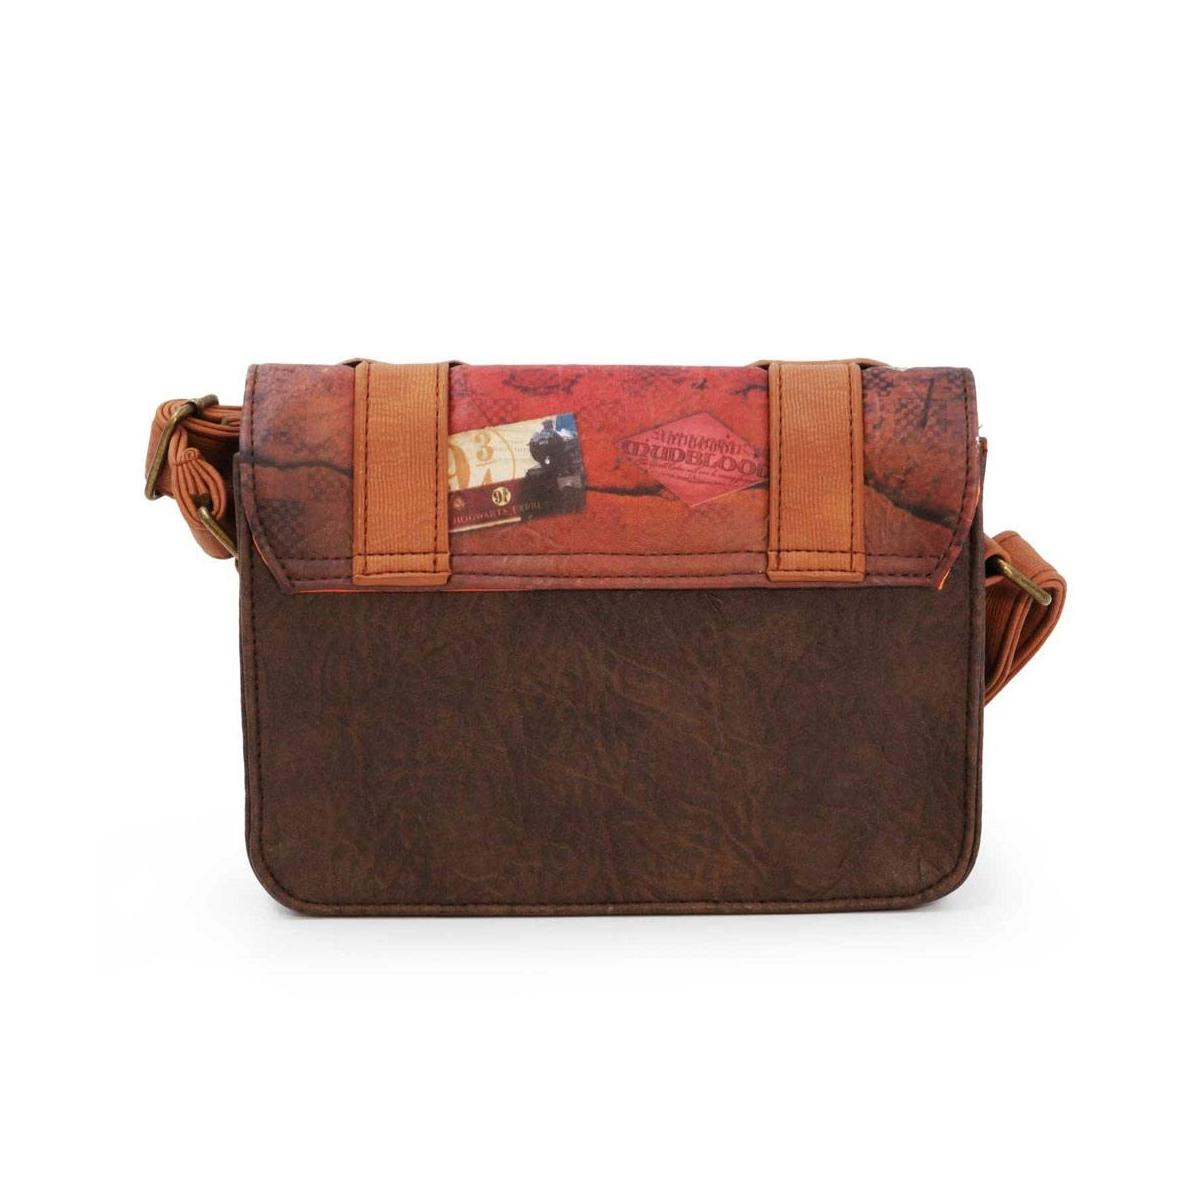 Sac bandouliere harry potter